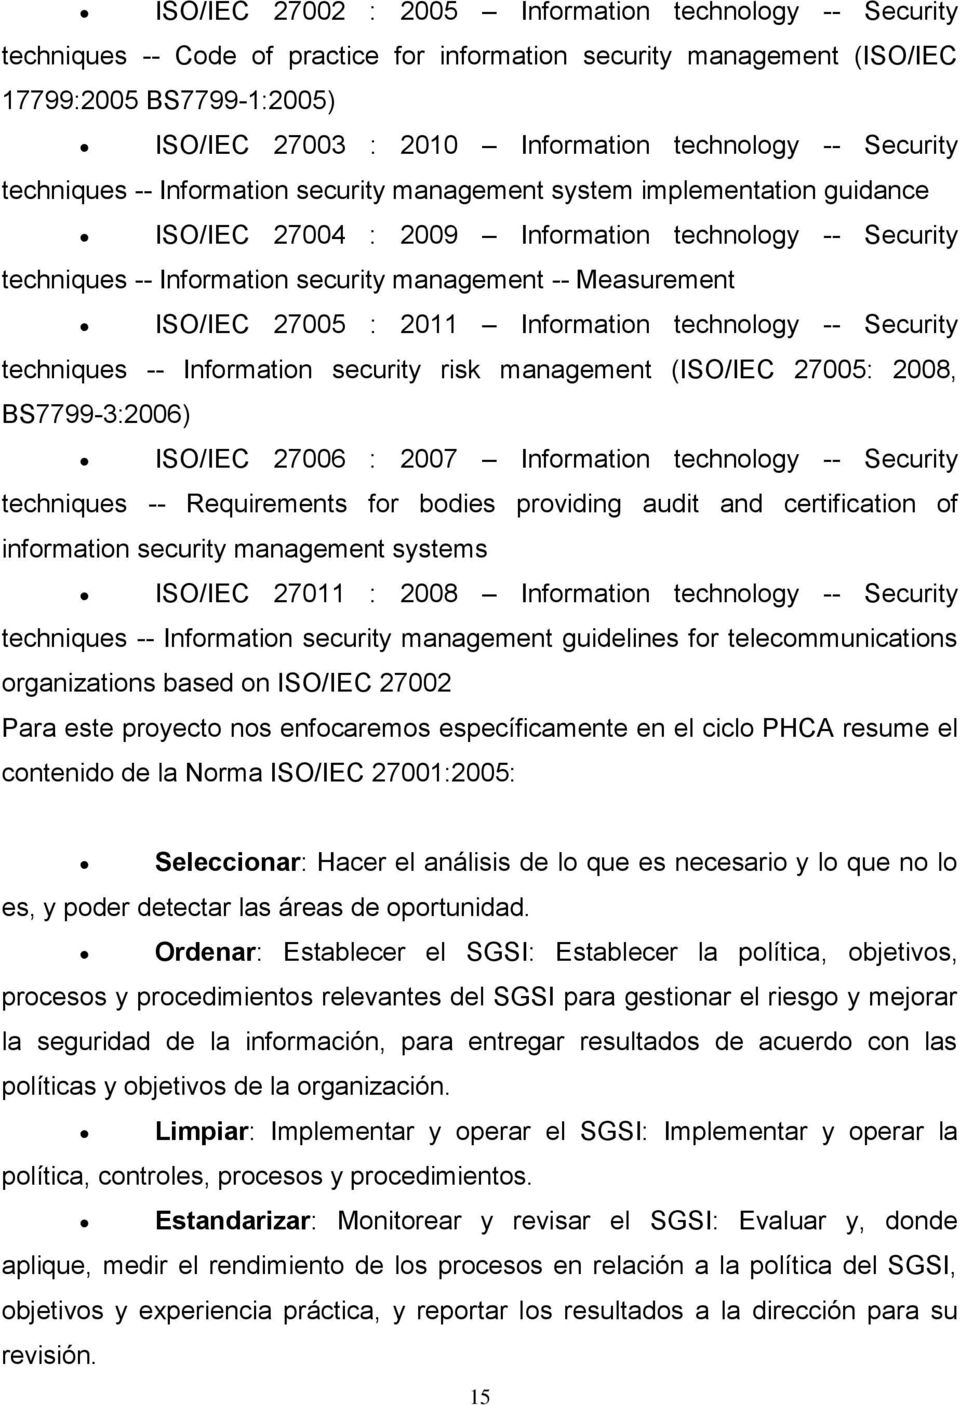 management -- Measurement ISO/IEC 27005 : 2011 Information technology -- Security techniques -- Information security risk management (ISO/IEC 27005: 2008, BS7799-3:2006) ISO/IEC 27006 : 2007